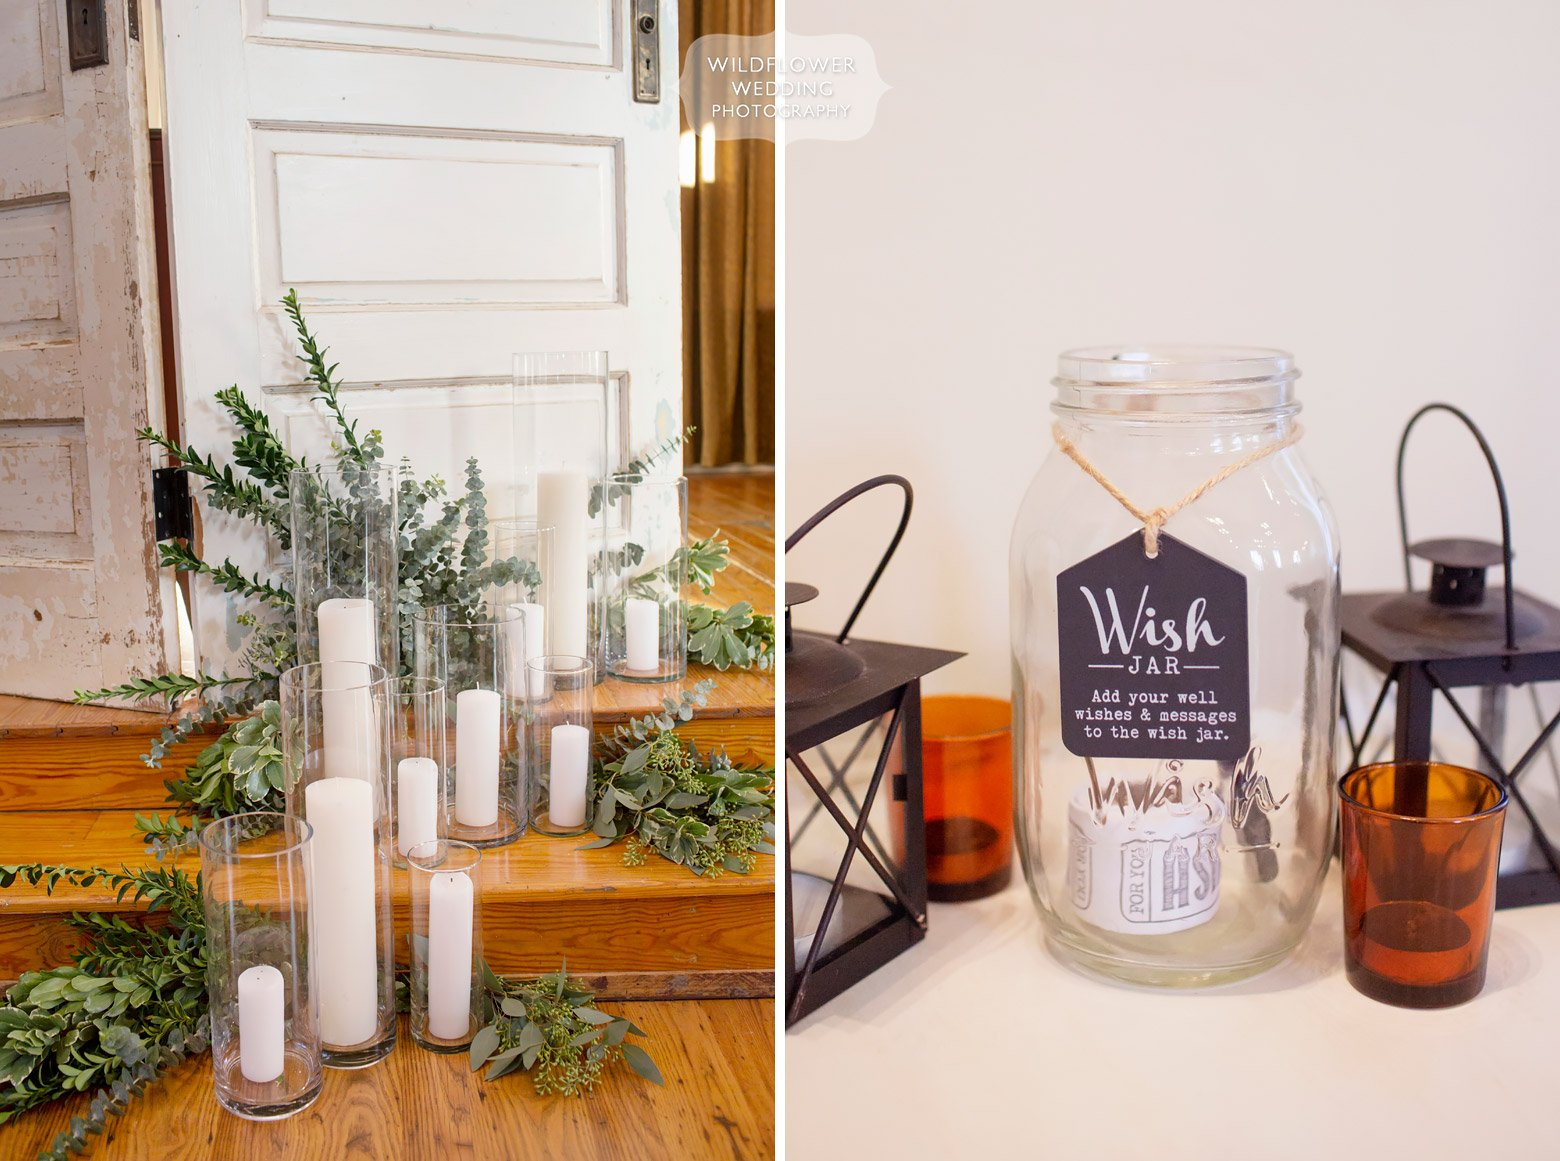 Wish jar for wedding guests to write messages.